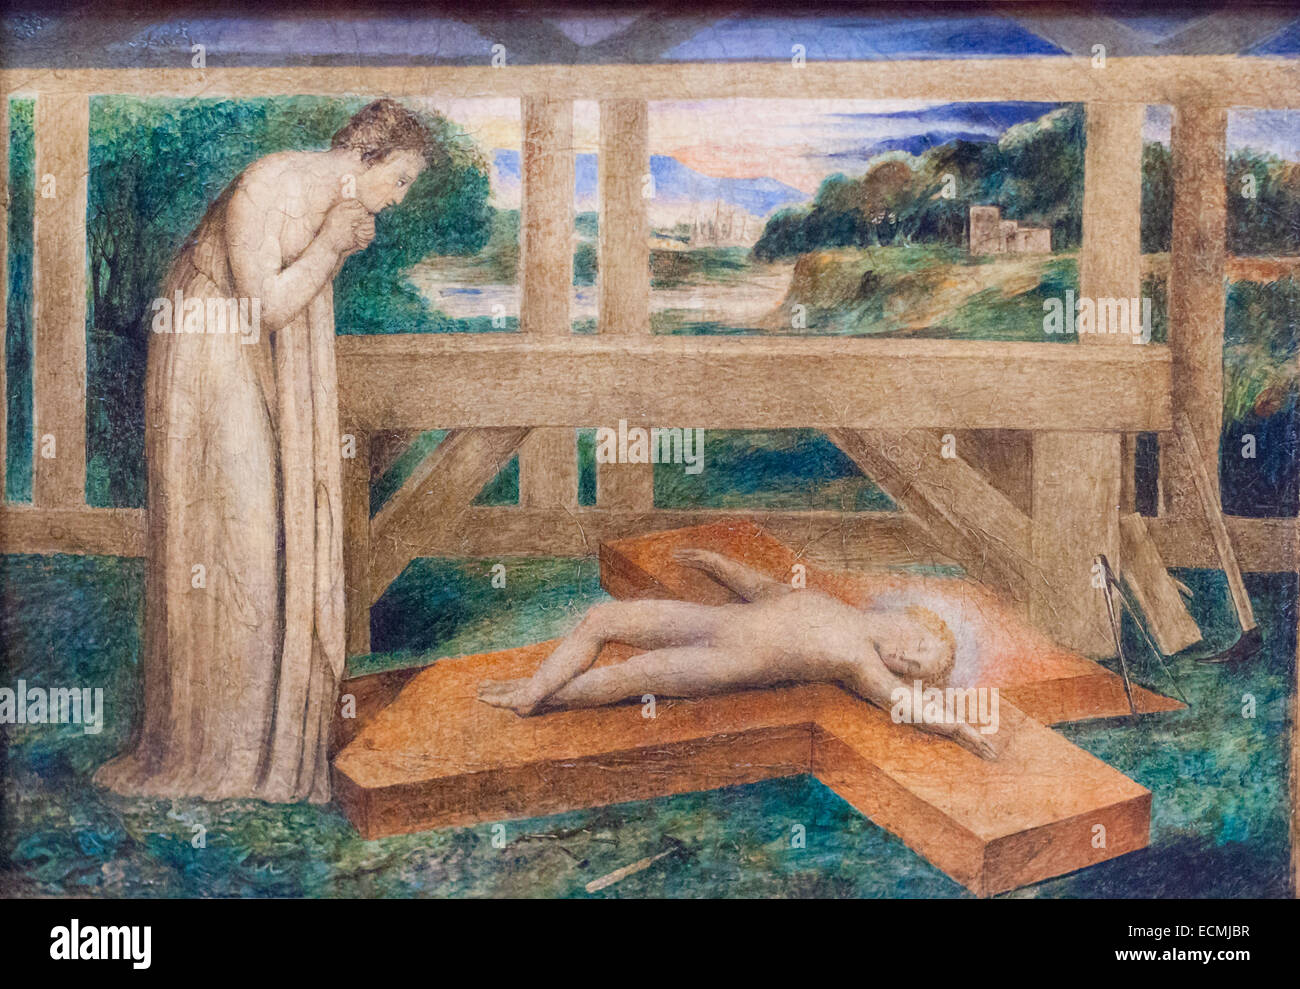 Our lady adoring the infant Jesus asleep on a cross, William Blake - Stock Image